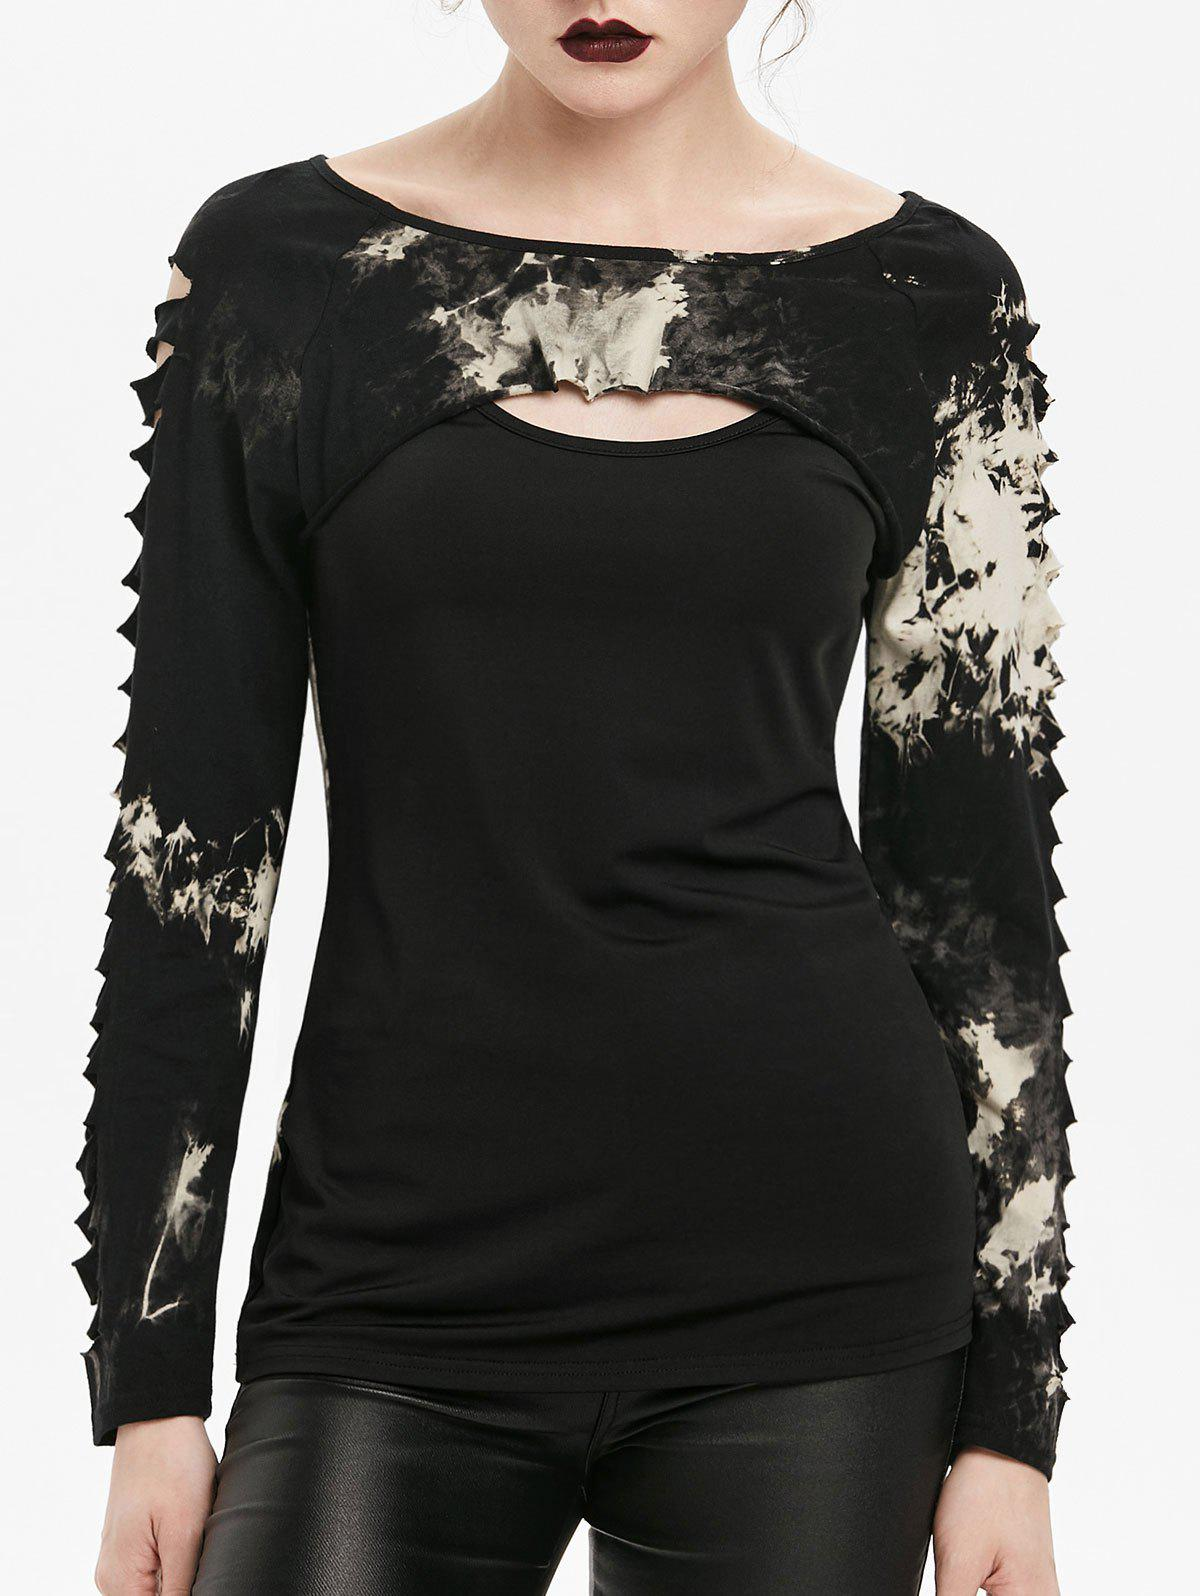 Chic Gothic Tie Dye Cut Out Ripped T-shirt